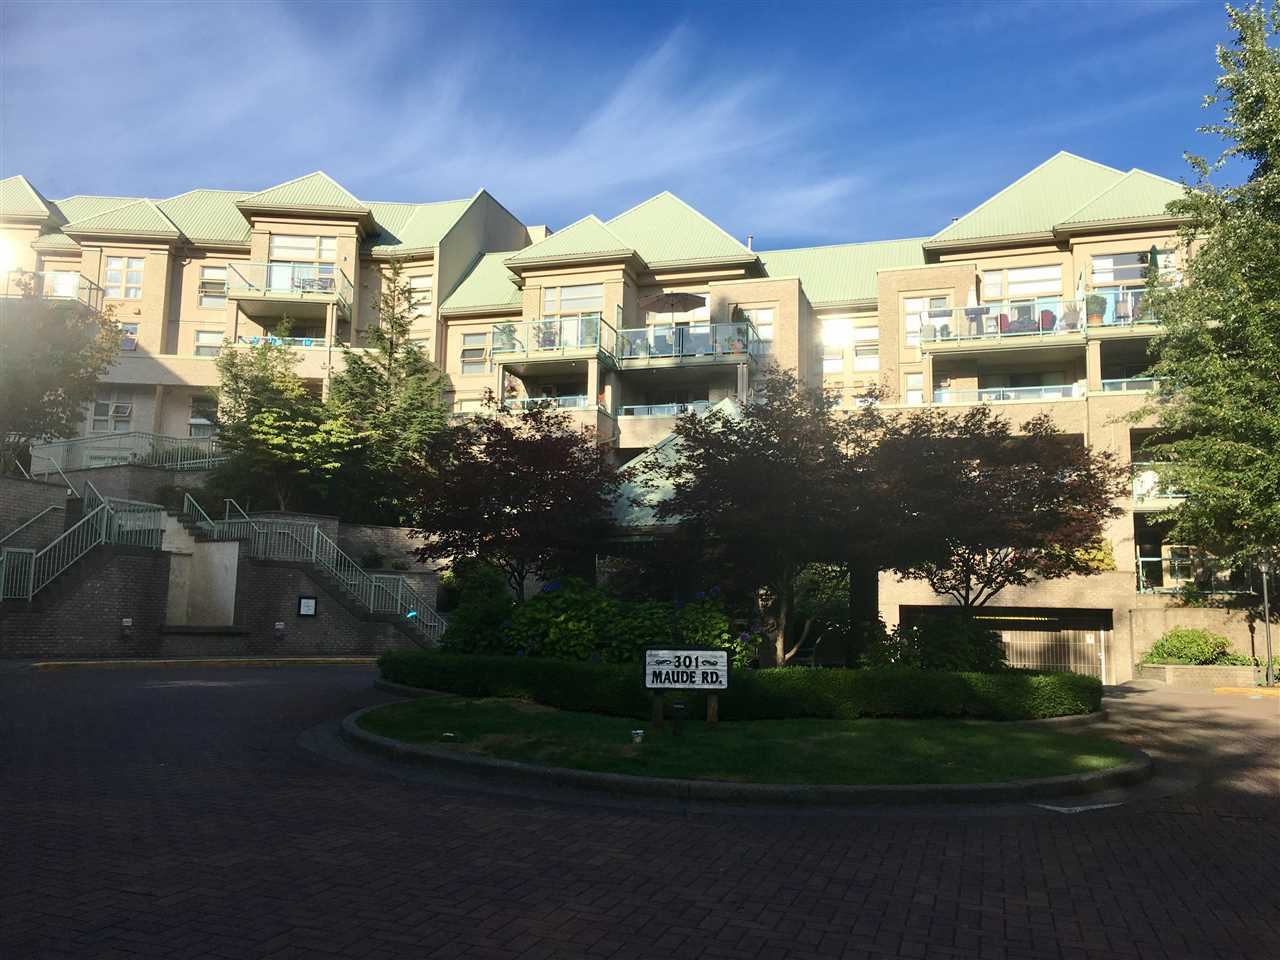 "Main Photo: 205 301 MAUDE Road in Port Moody: North Shore Pt Moody Condo for sale in ""COOPER'S LANDING"" : MLS®# R2199394"